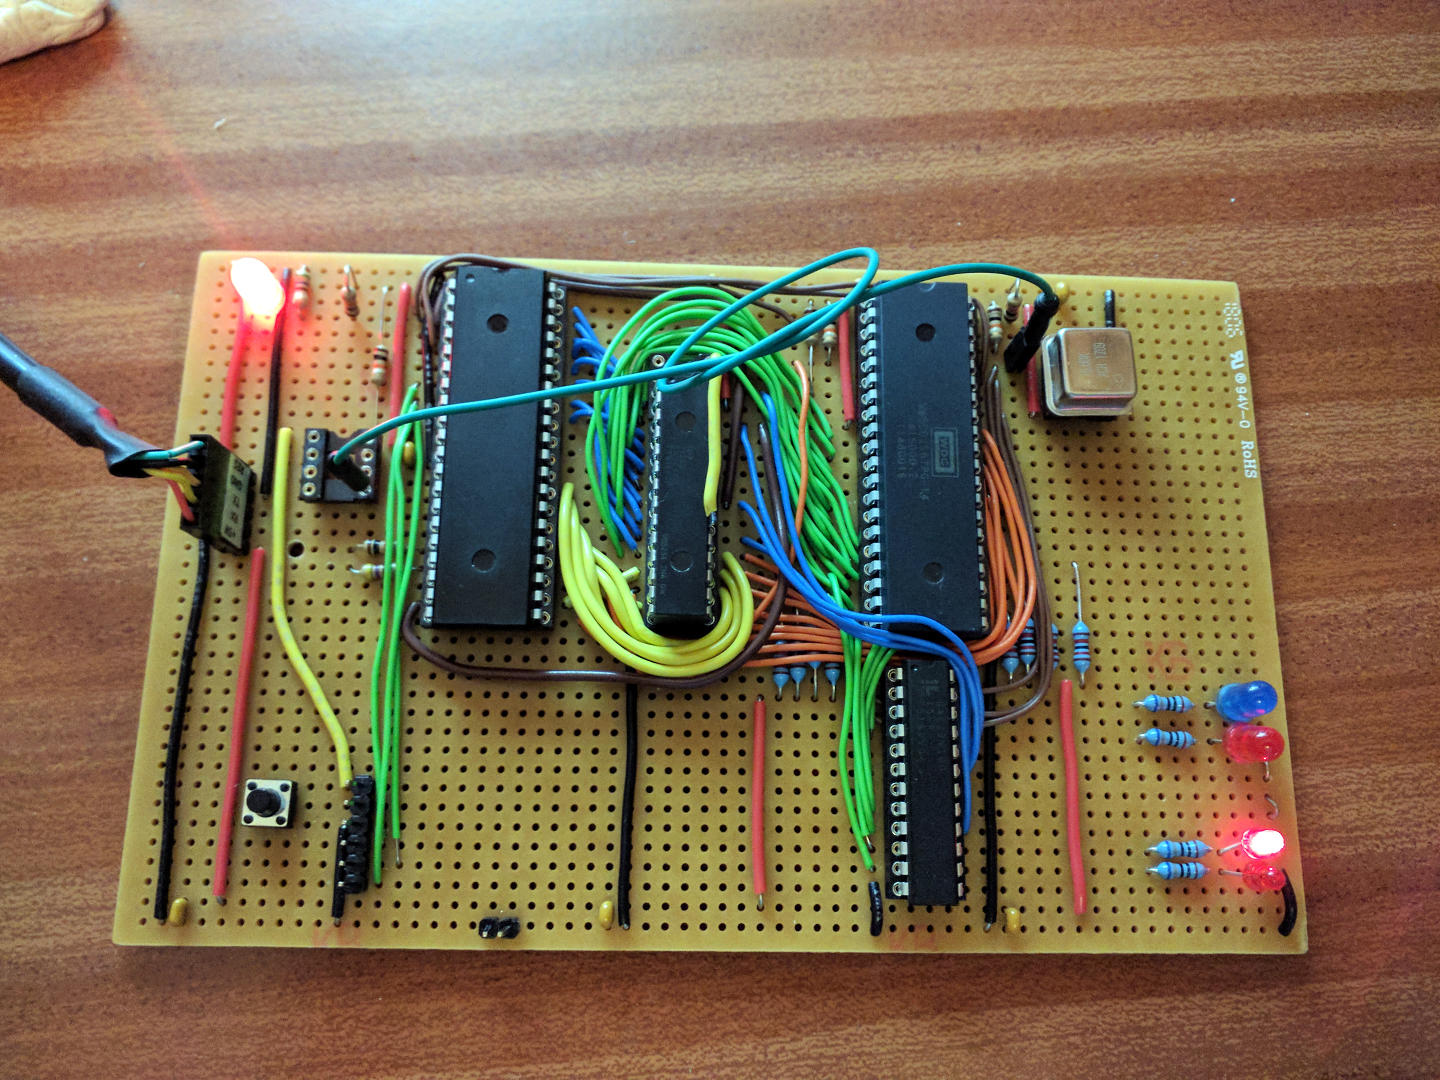 Ruby 6502 on stripboard